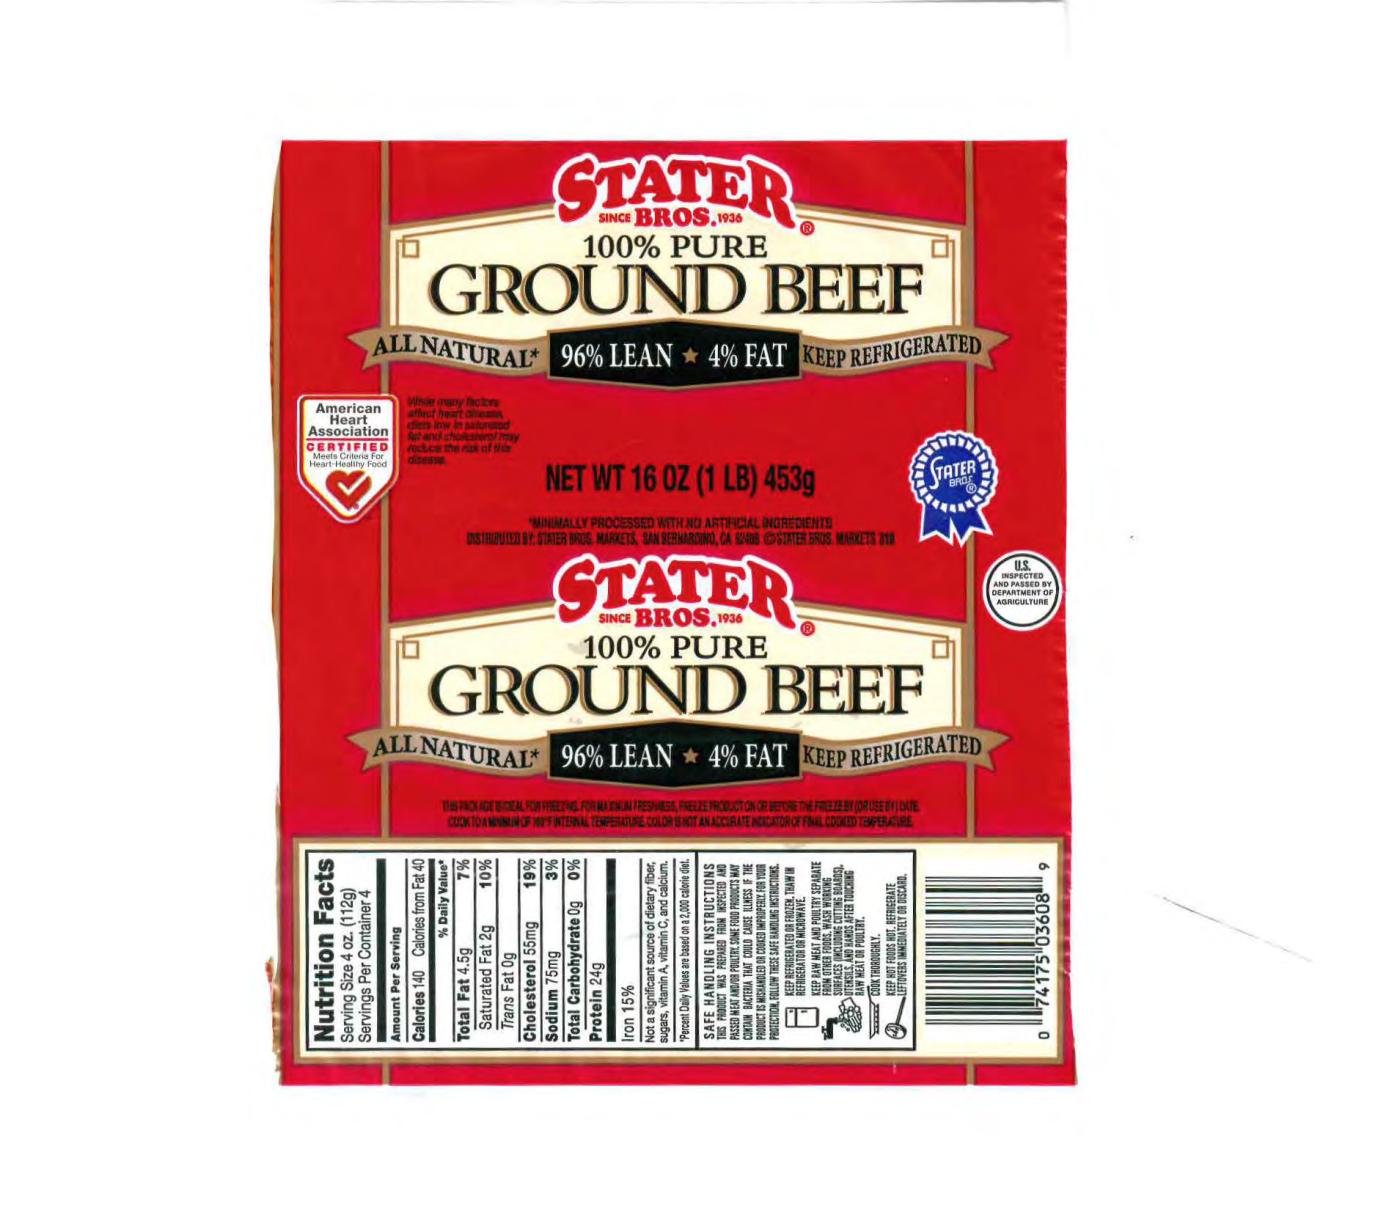 ground beef- central valley meats co. - recall